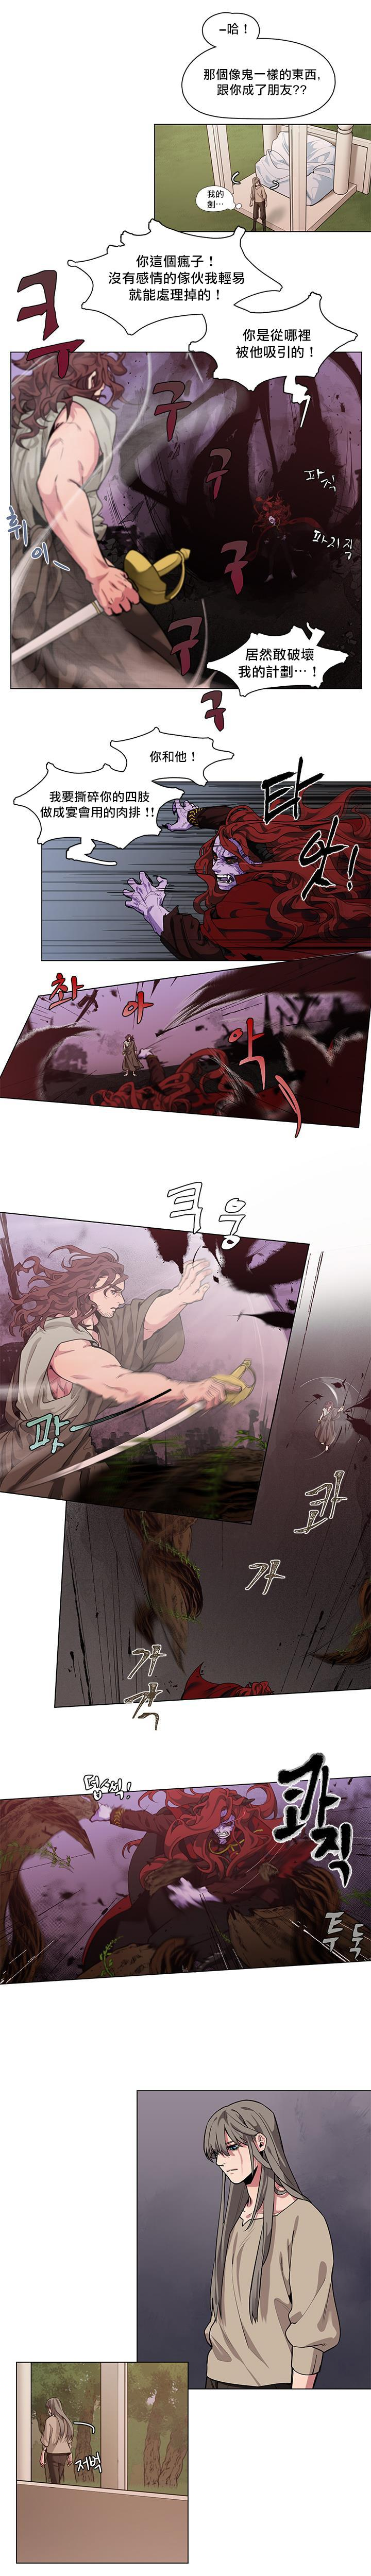 The Warrior and the Deity   勇者与山神 Ch. 2-6+加笔1+加笔2 45